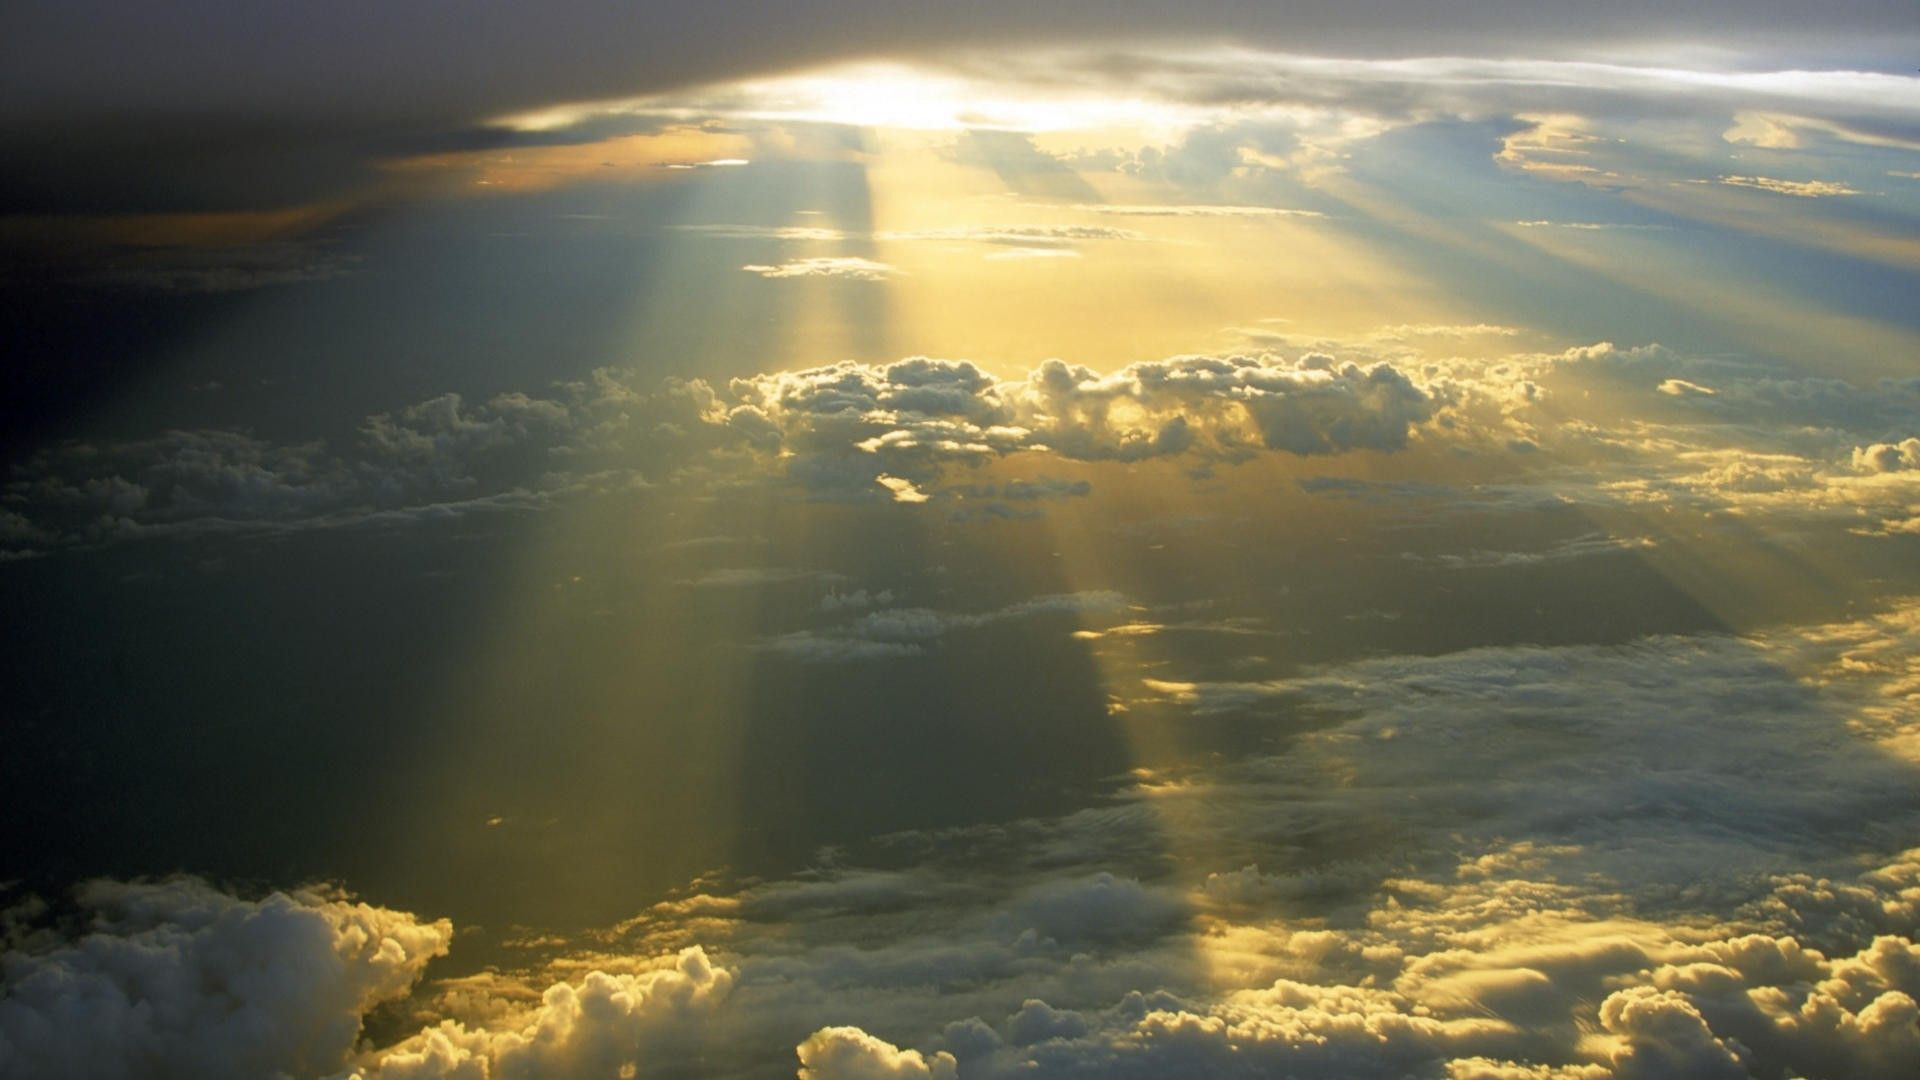 pictures of the sun breaking through the clouds | Sun breaking through the clouds wallpaper ...